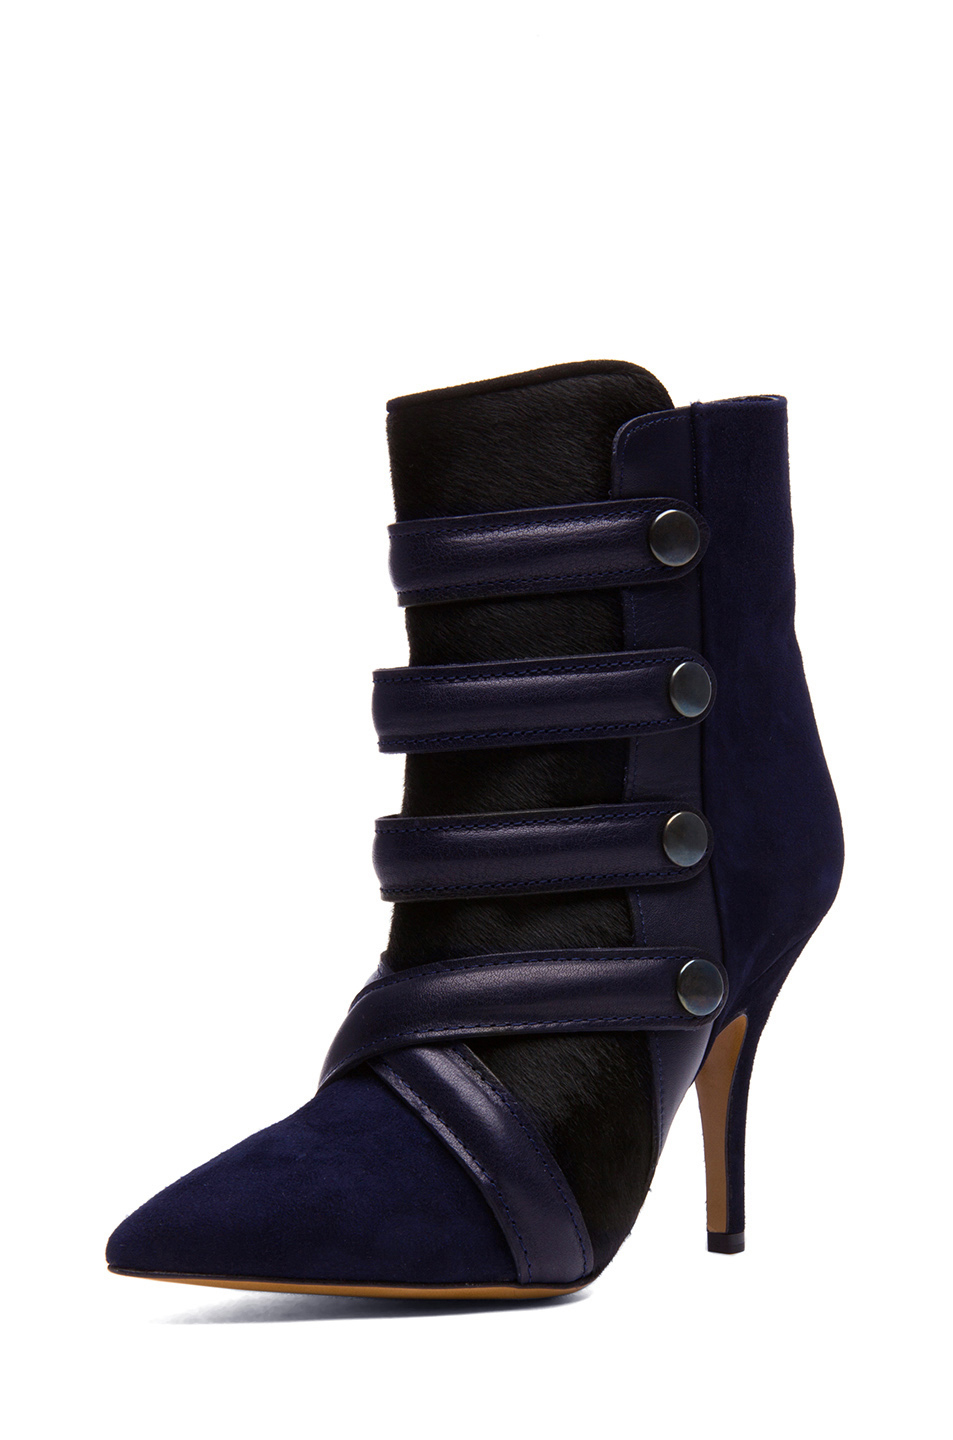 Isabel Marant|Tacy Pony Booties in Midnight